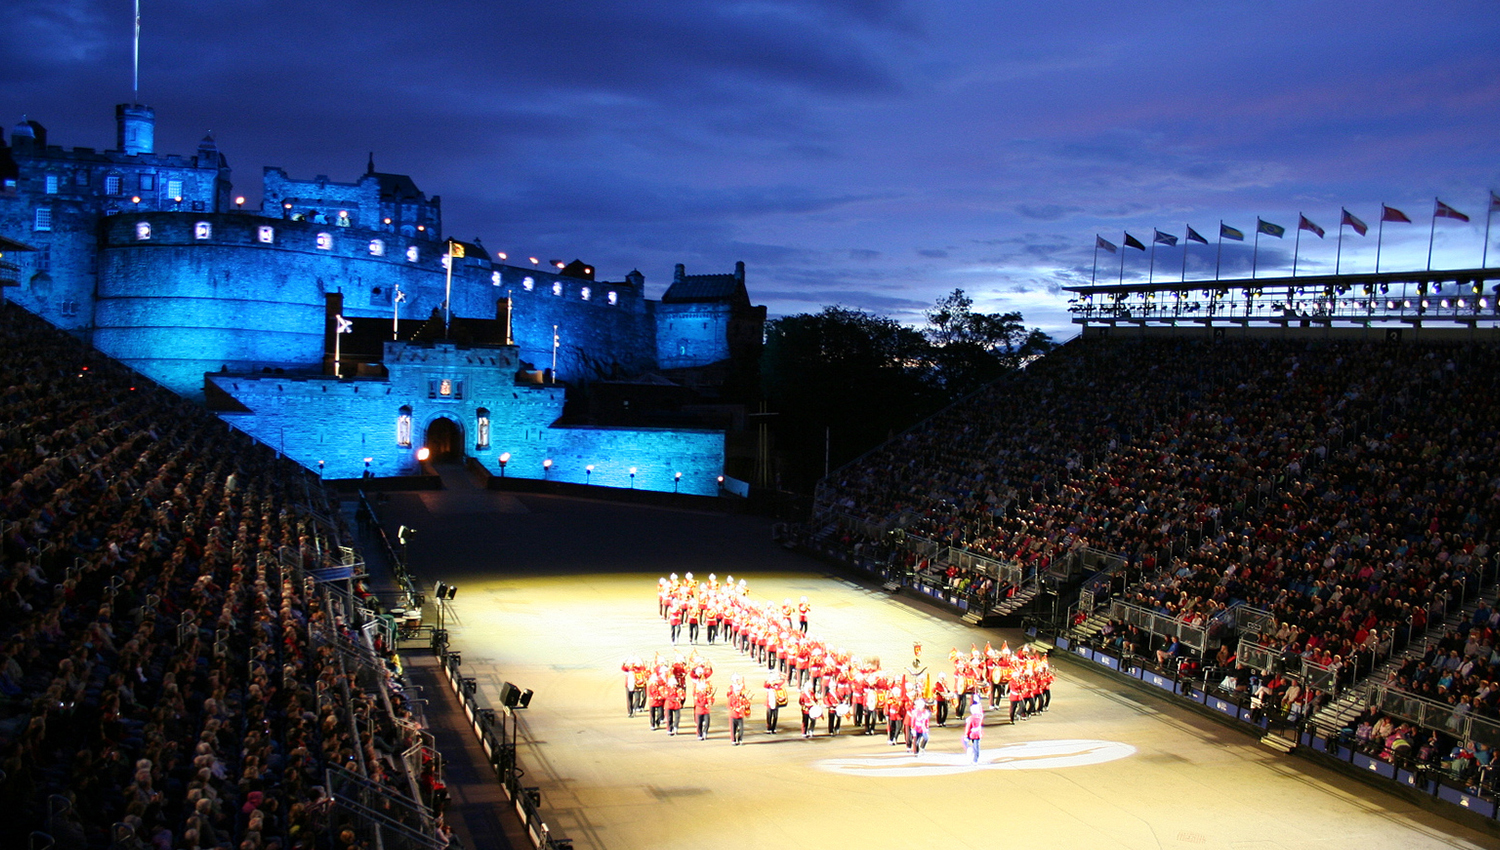 Edinburgh military tattoo meilleurs billets et visites for Royal military tattoo